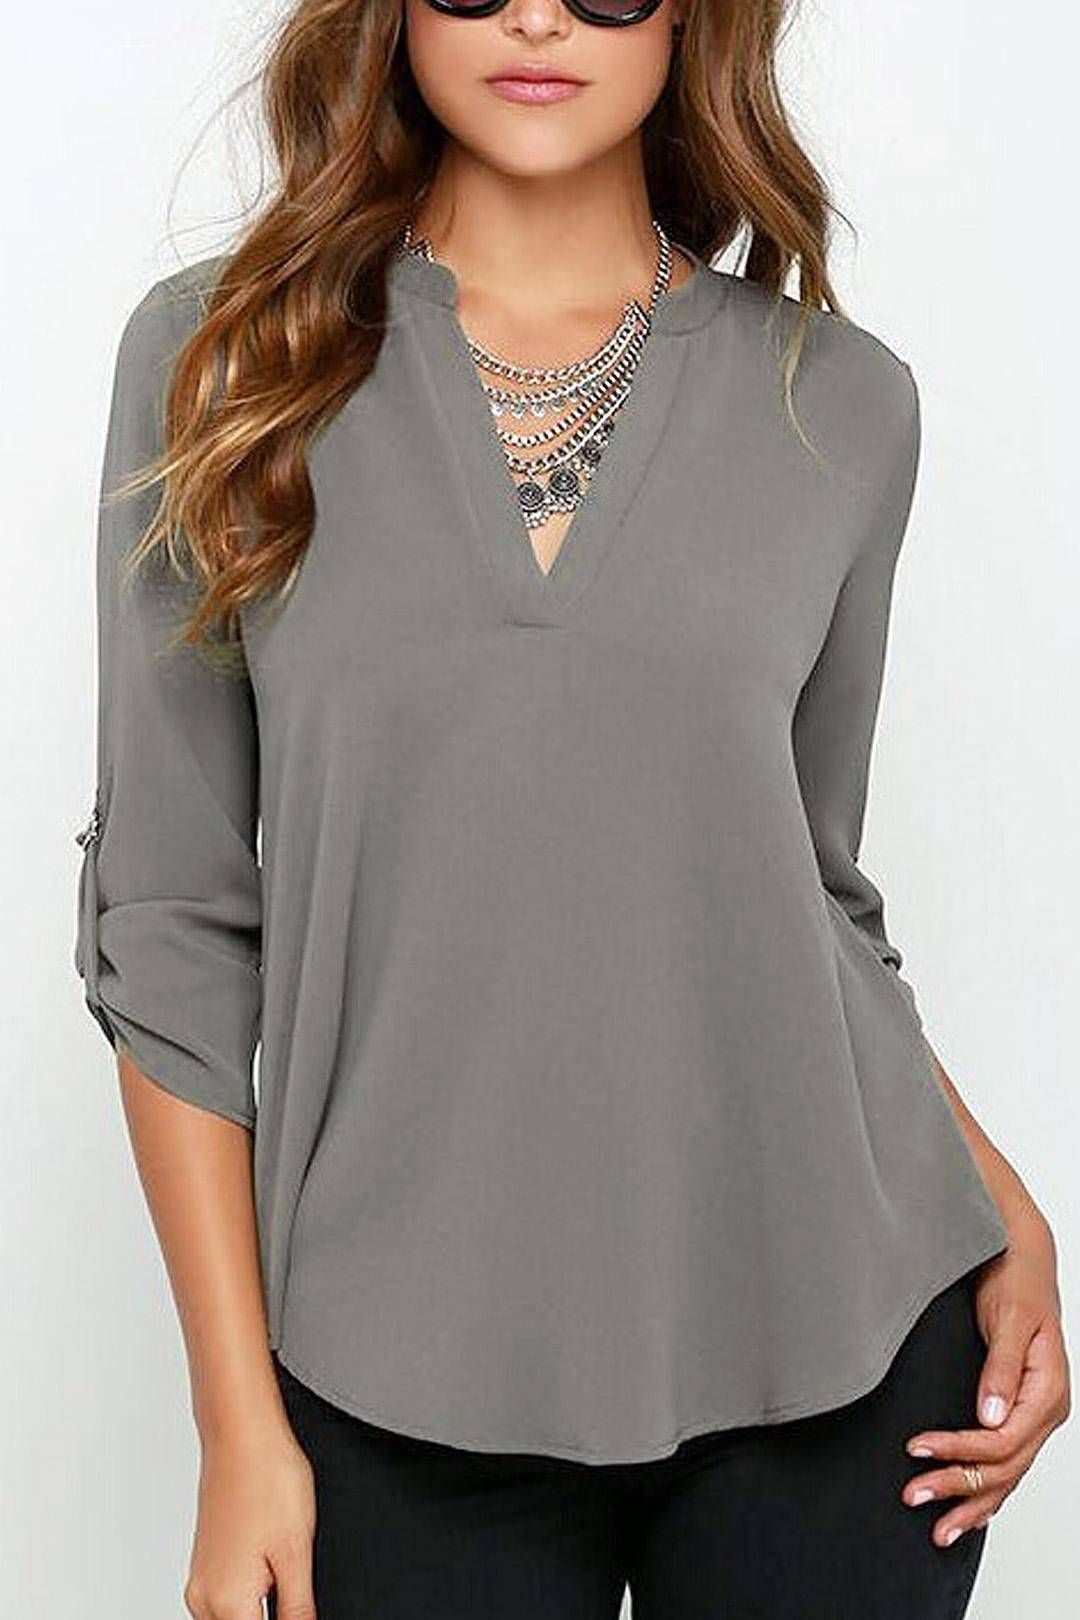 c8d80a66902f V Neck Blouse with Adjustable Sleeves - US$18.95 | clothing spring ...